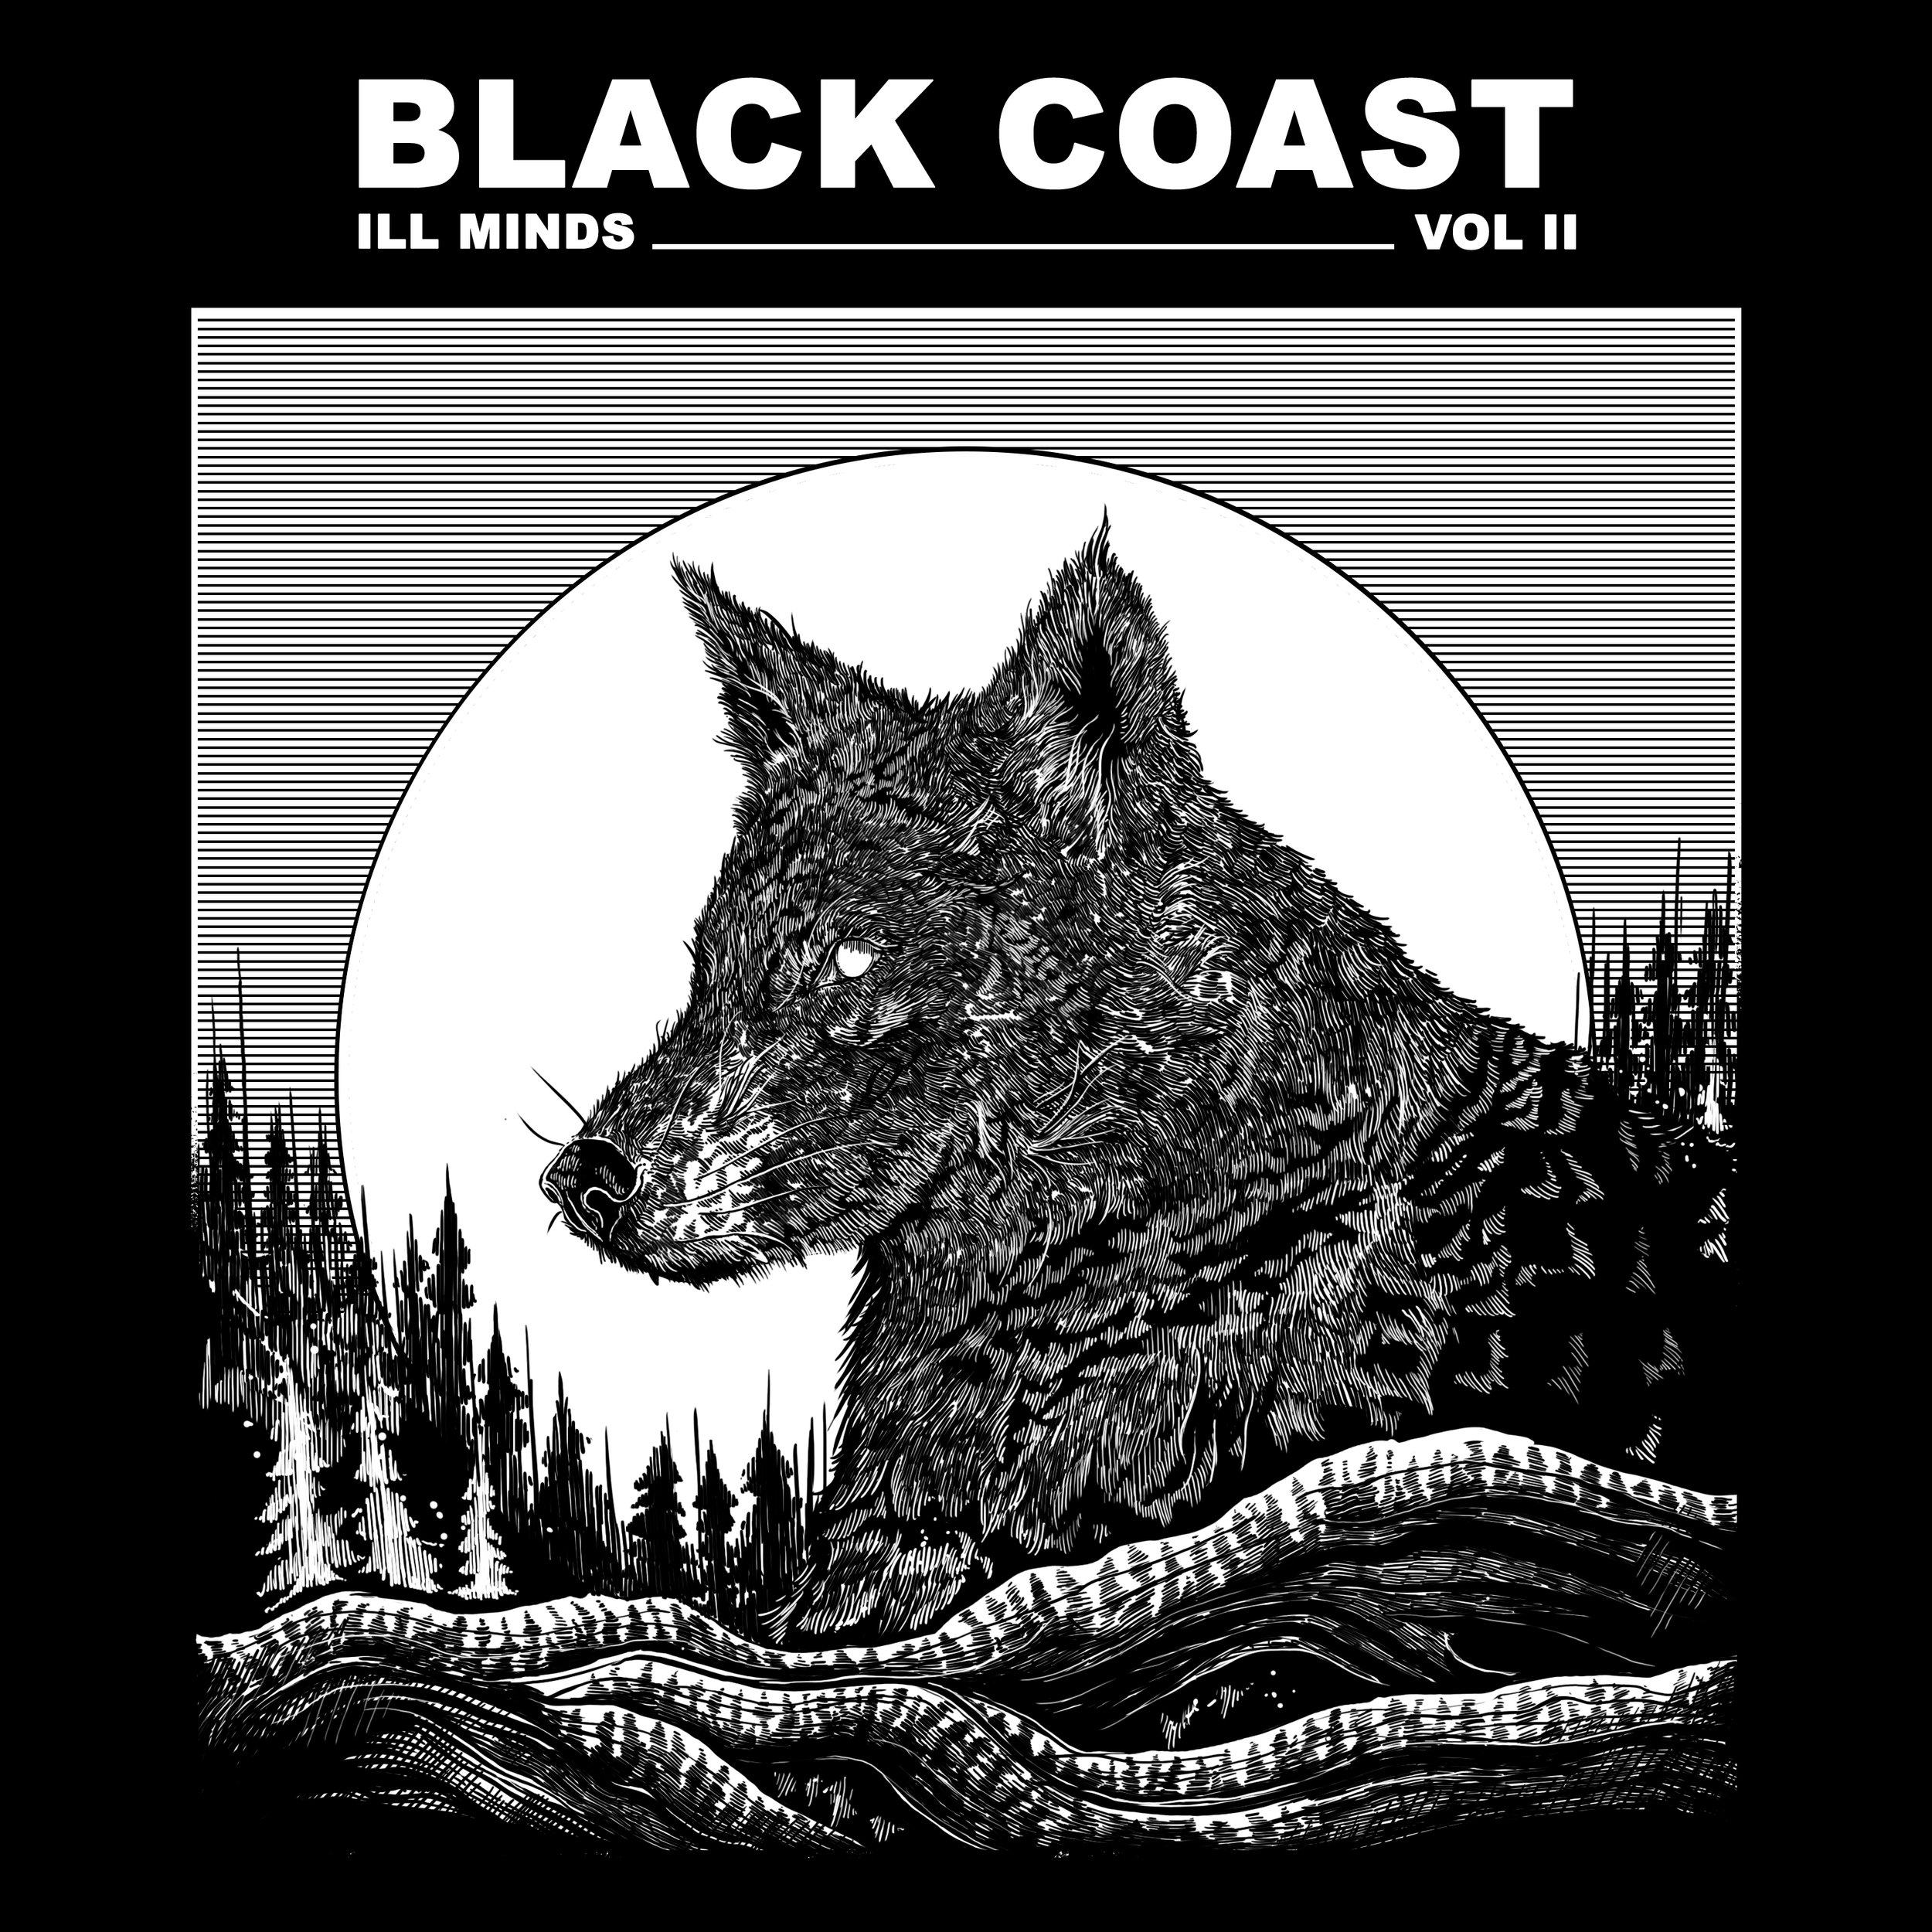 blackcoast_IM2.jpg